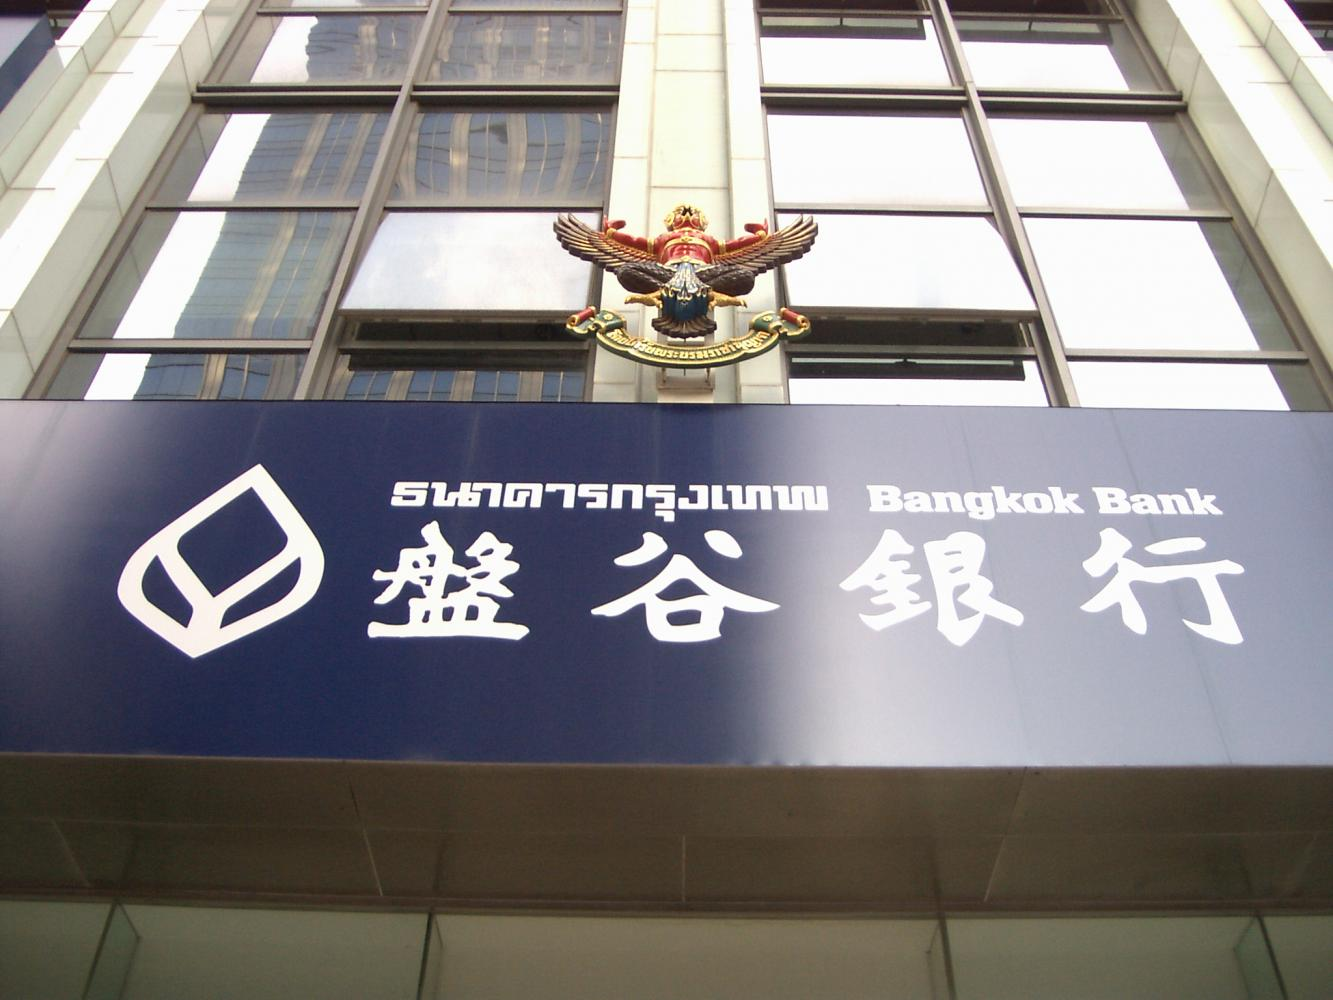 BBL has 32 offshore branches in 15 economies, including wholly owned subsidiaries in Indonesia, Malaysia and China.